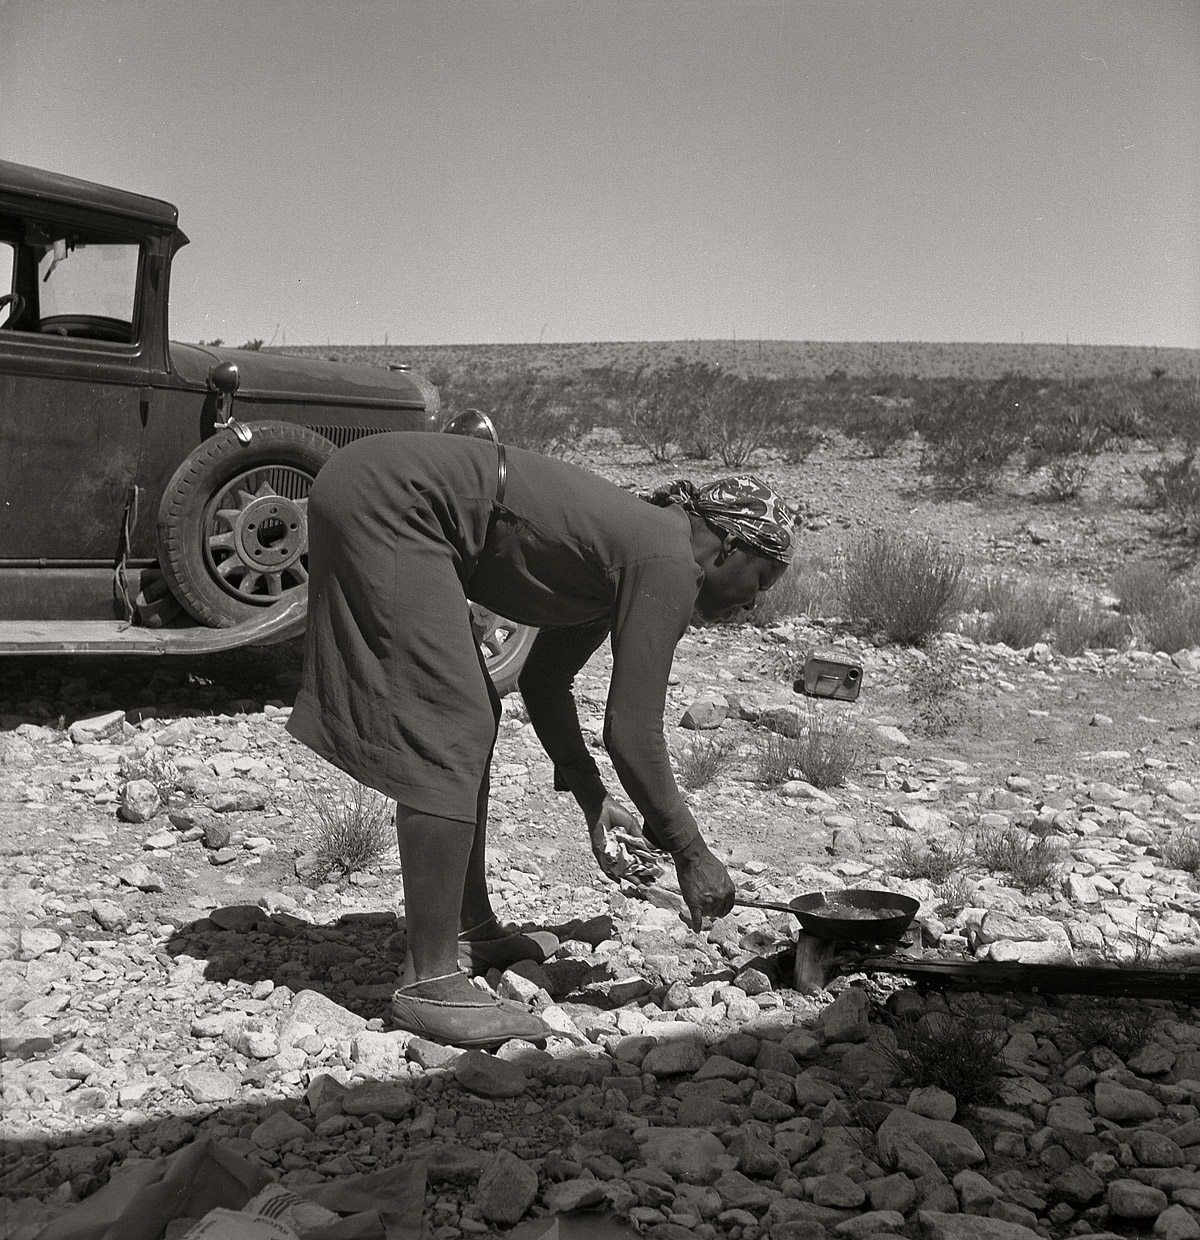 dorothea lange an american photographer Dorothea lange: dorothea lange, american documentary photographer whose portraits of displaced farmers during the great depression greatly influenced later documentary and journalistic photography.